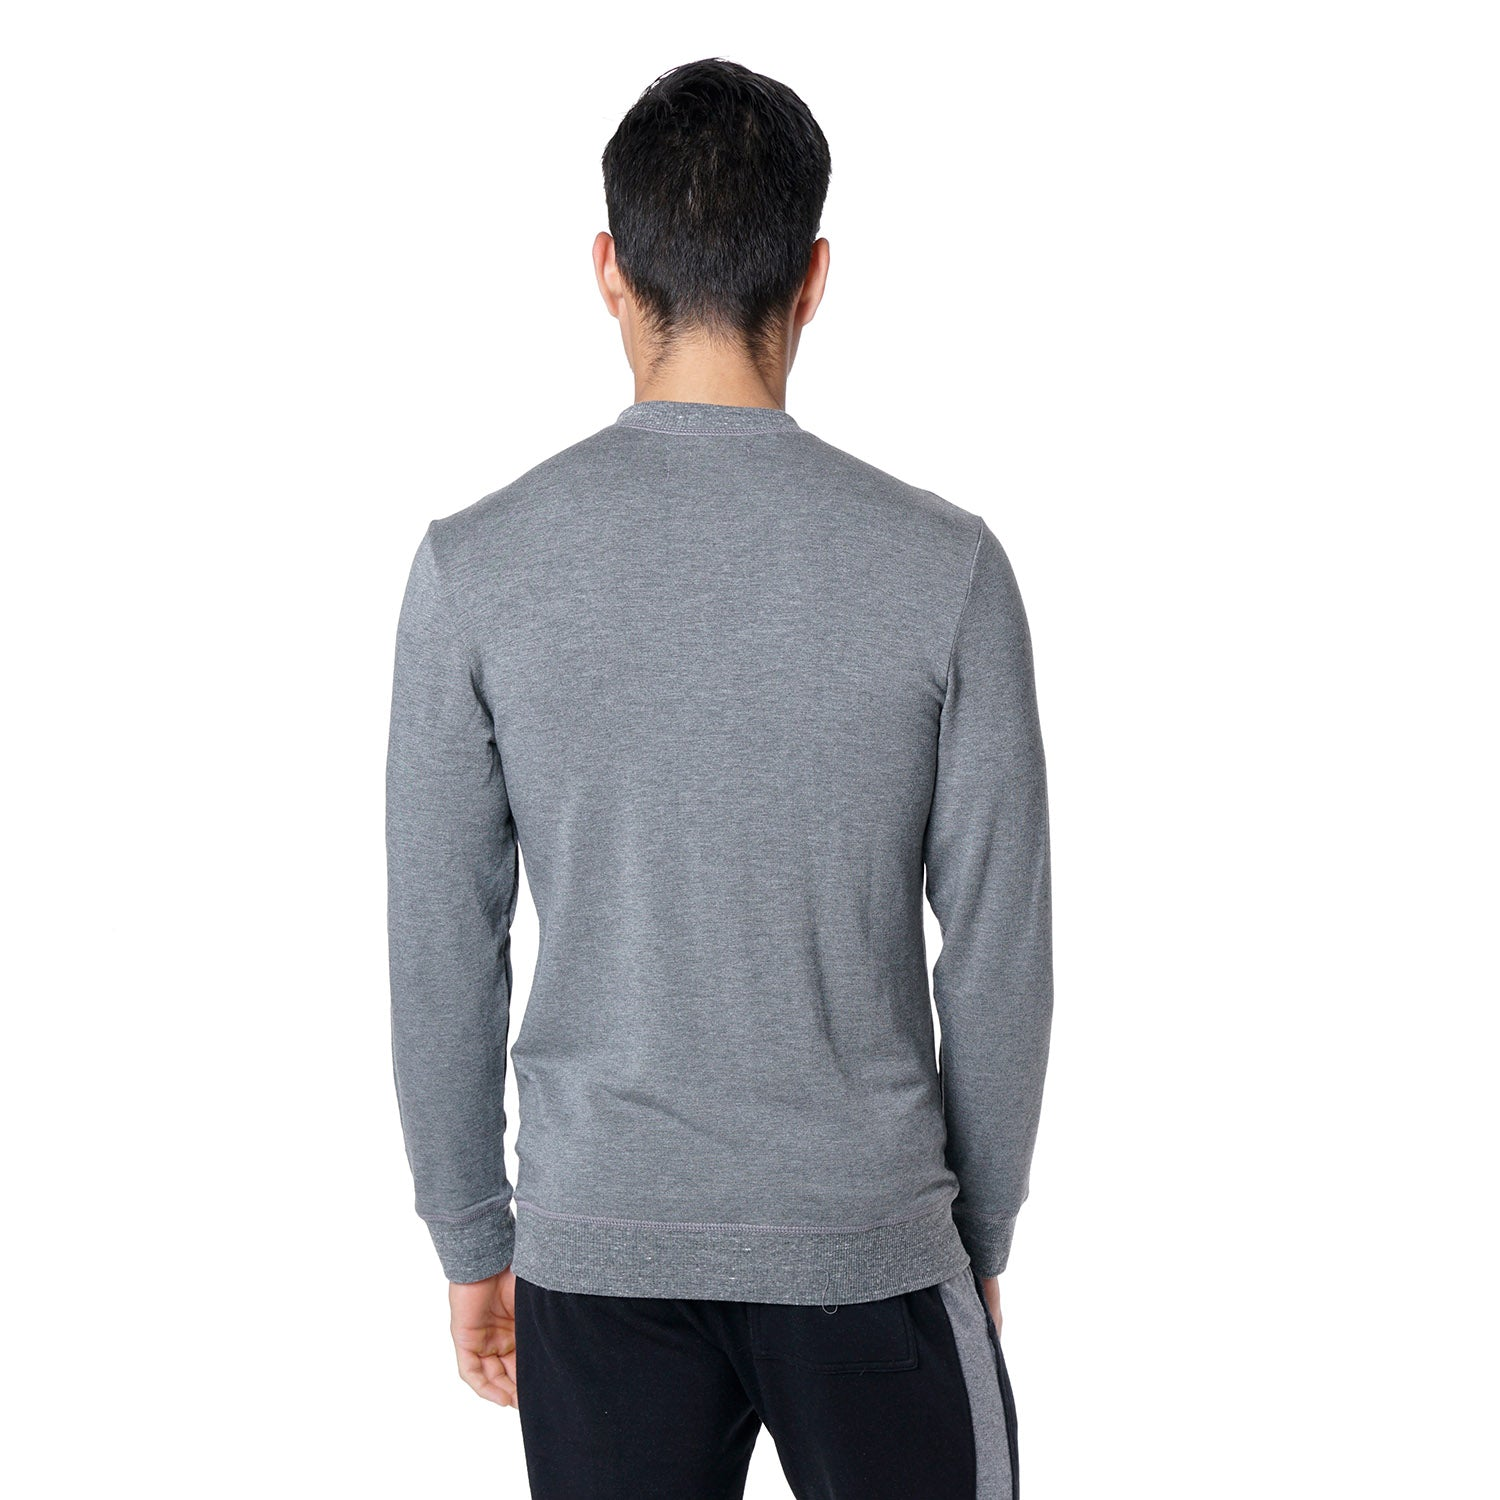 Crewneck Sweatshirt in Grey - Mitchell Evan